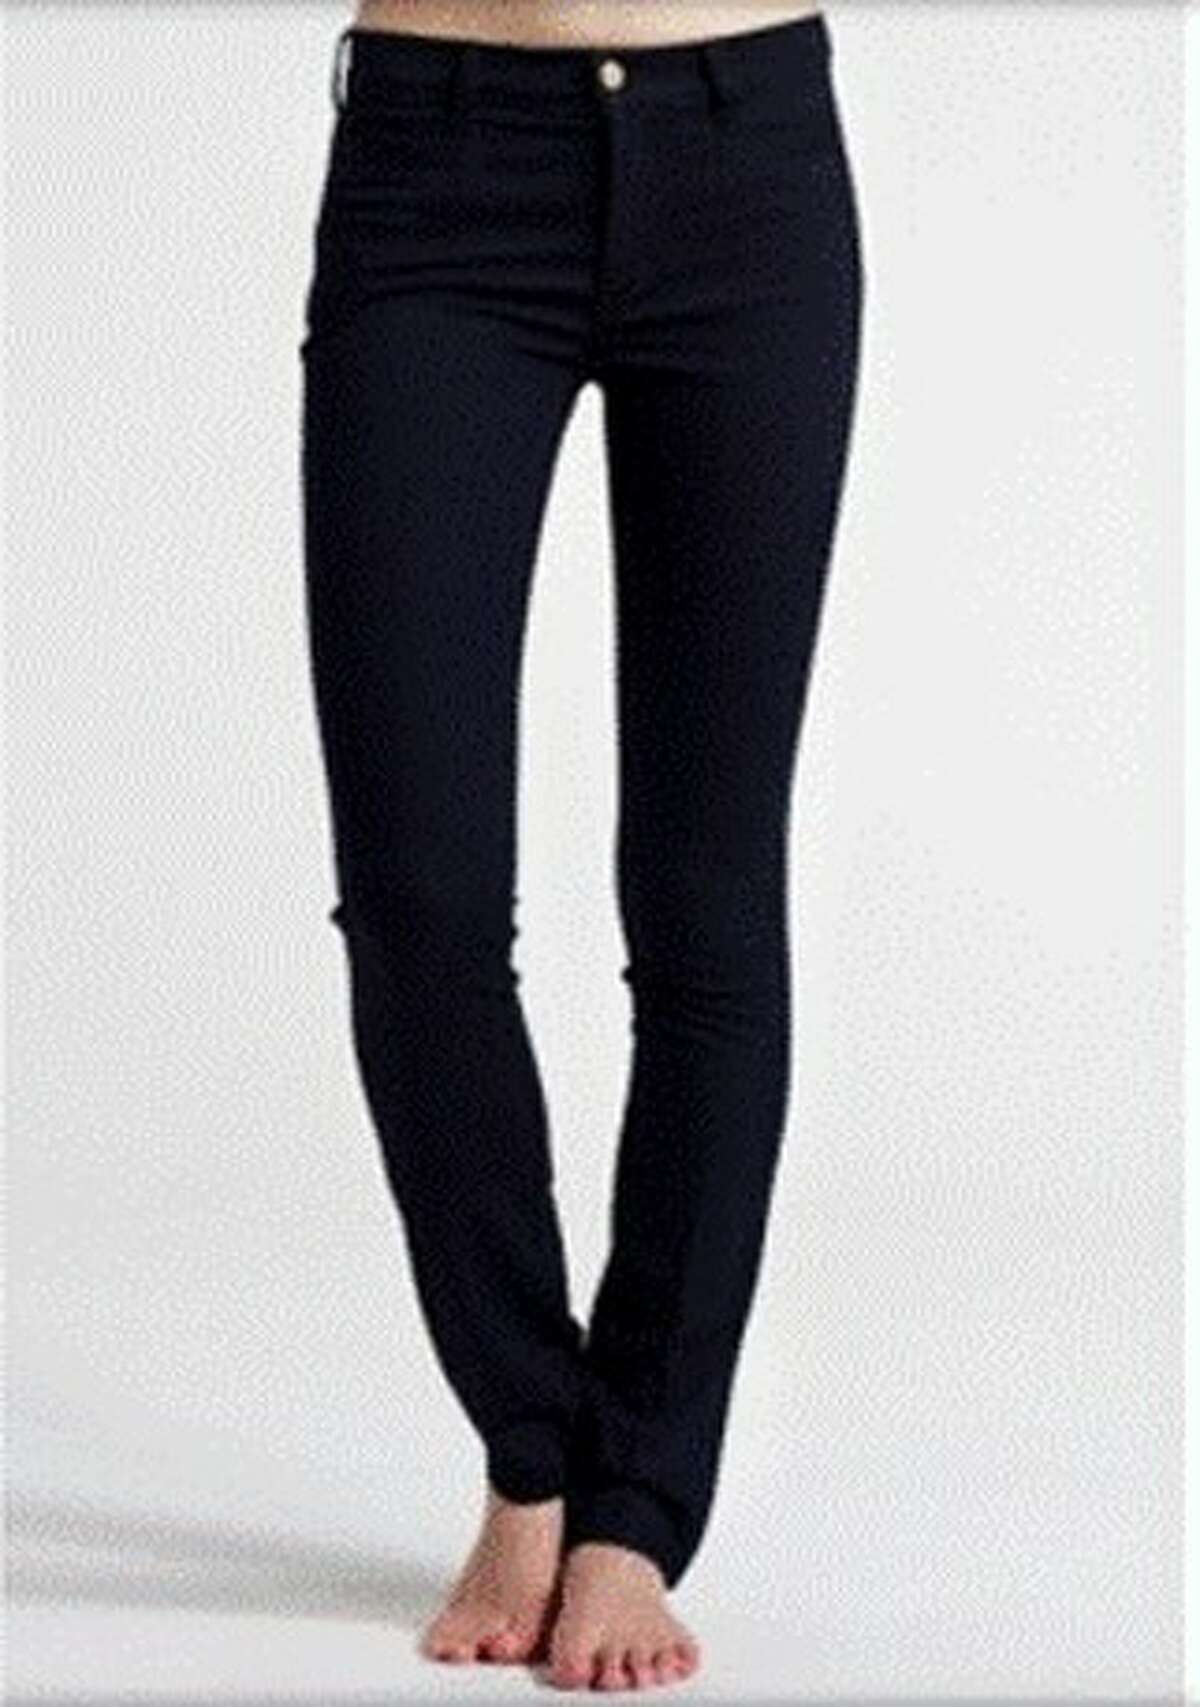 Skinny jeans are here to stay. If you are looking for your first pair, start with a dark wash, and it should be snug from ankle to the waist. Skinny jeans are also worn shorter; the hem should sit at your ankles.